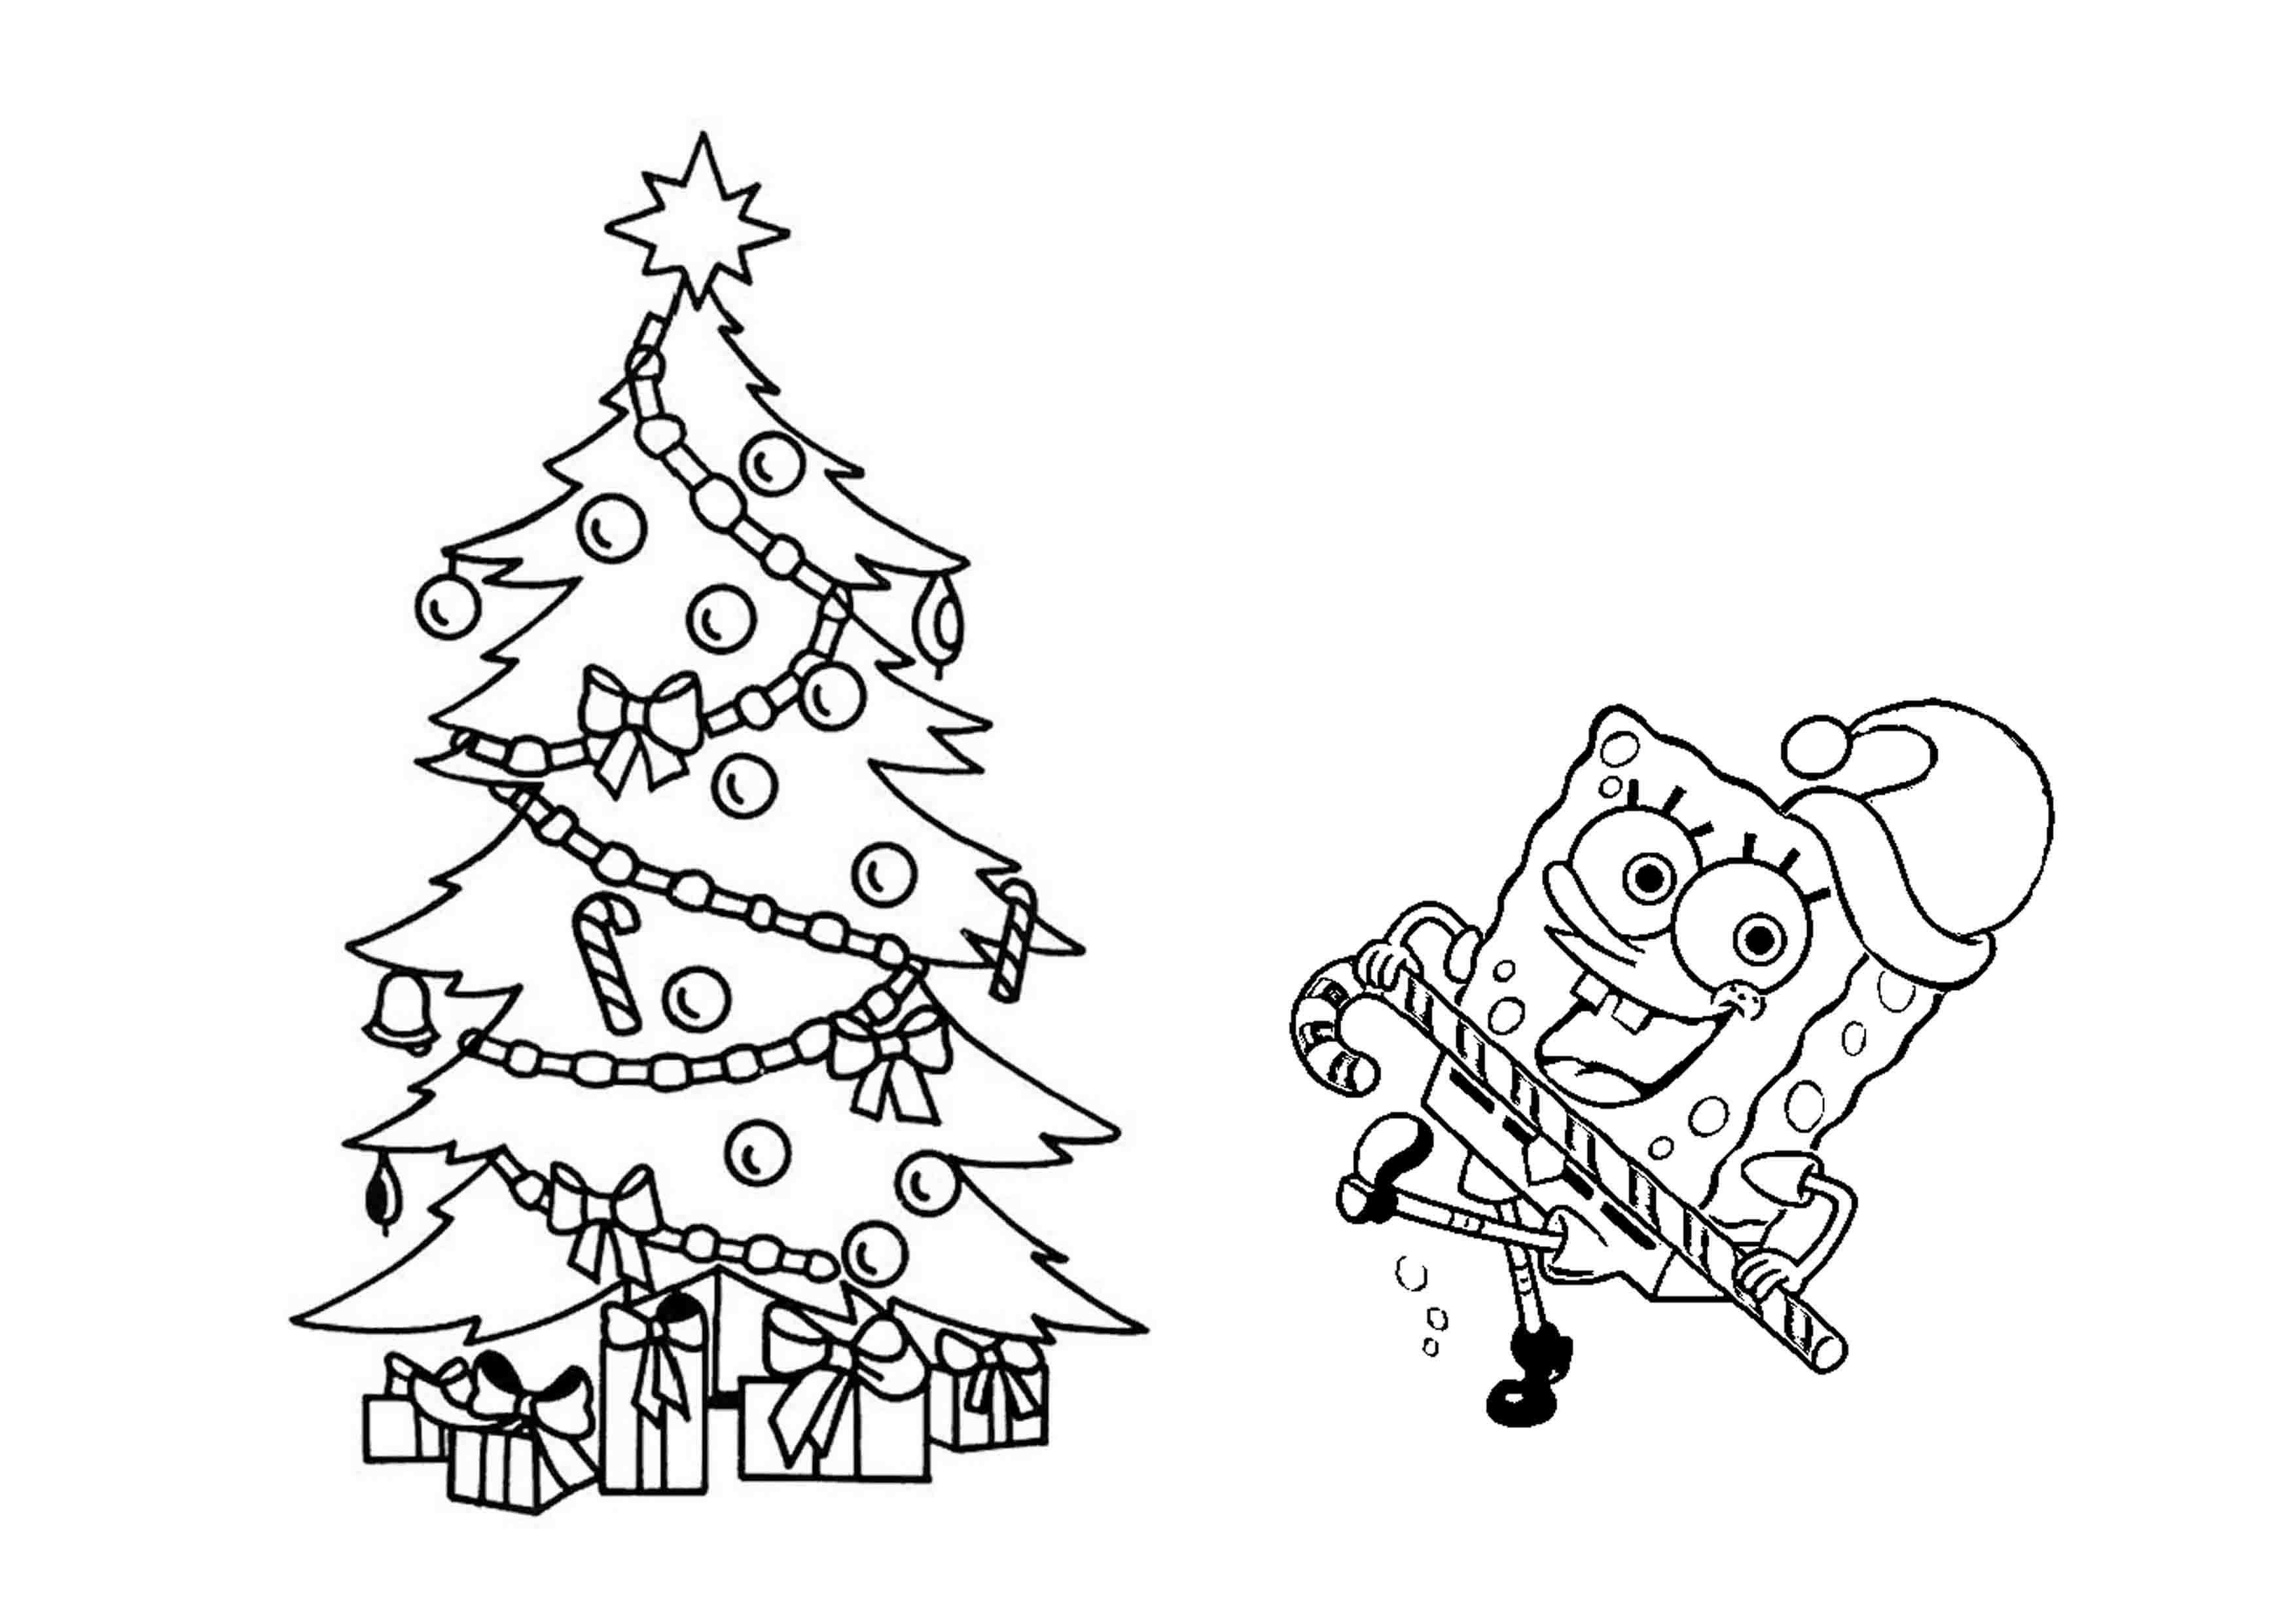 Christmas Coloring Booklet Printable With Print Download Pages For Kids